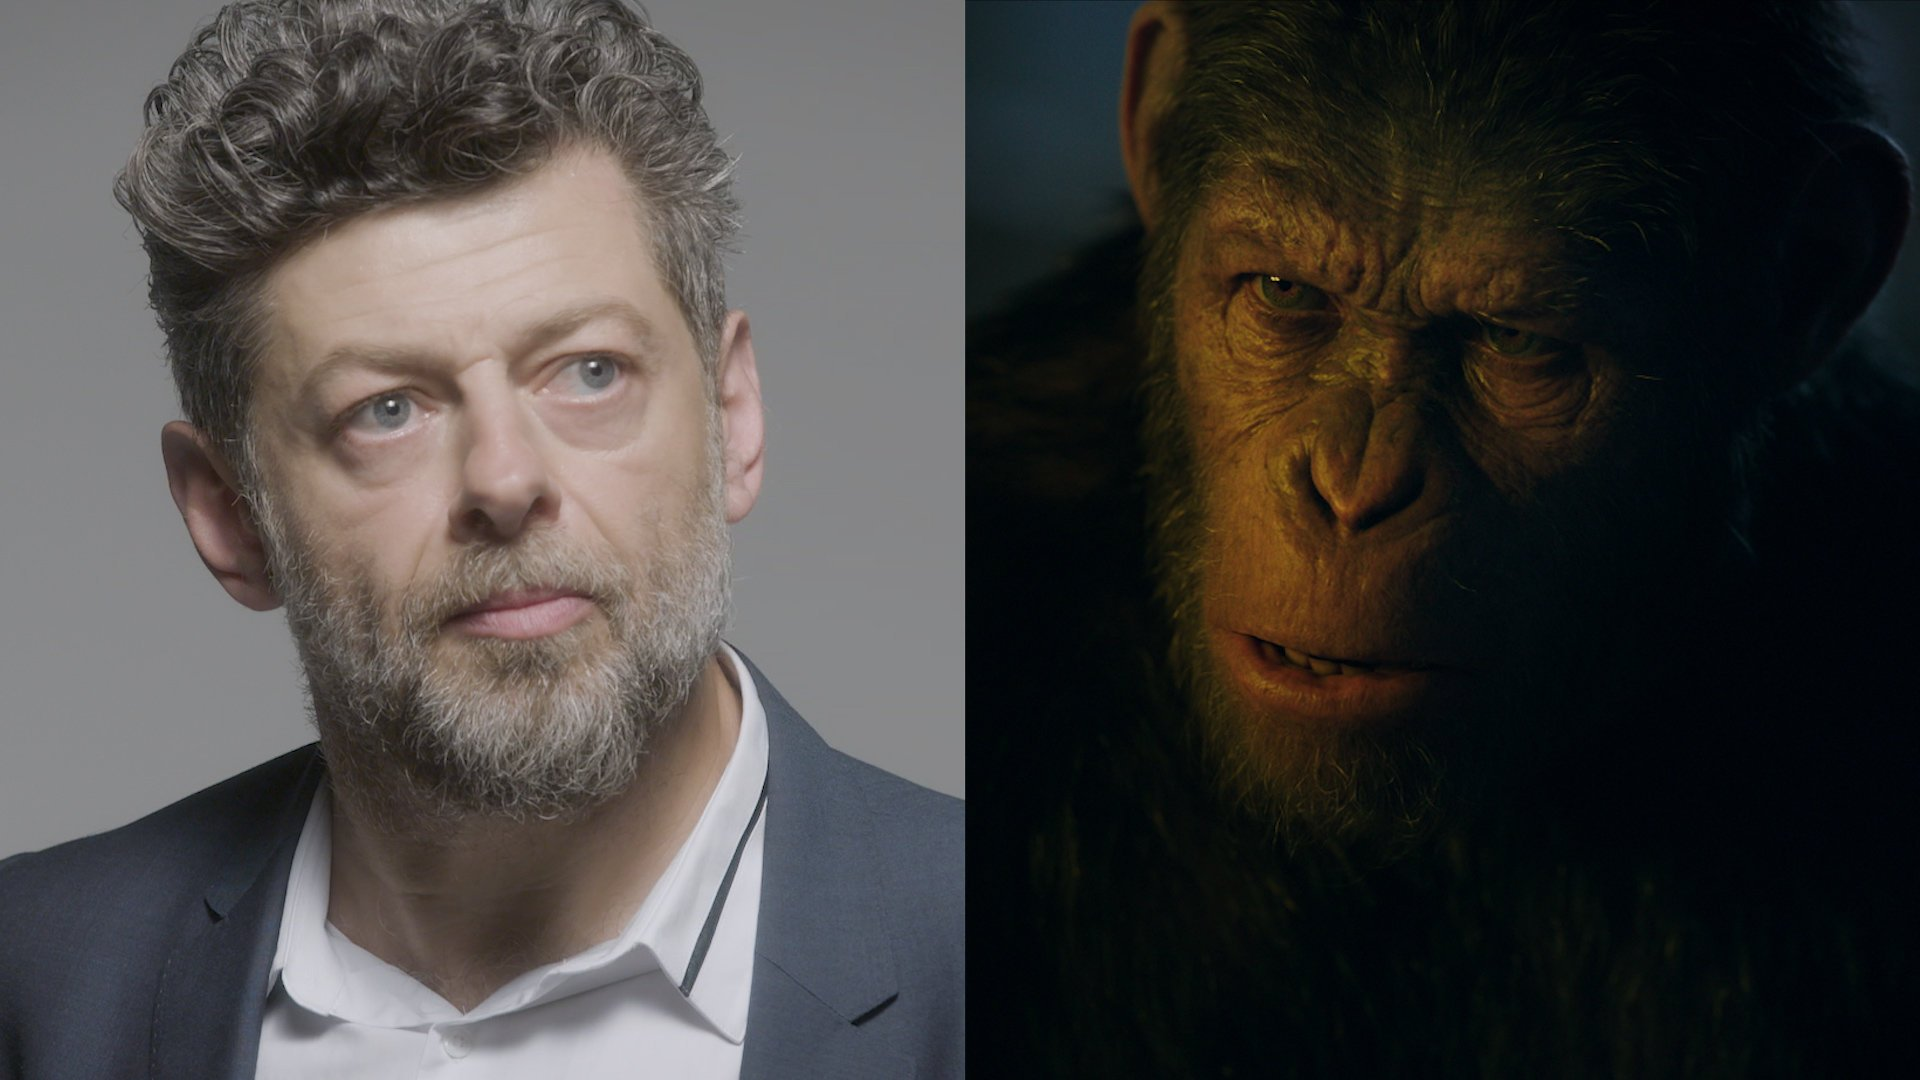 1920x1080 - Andy Serkis Wallpapers 10